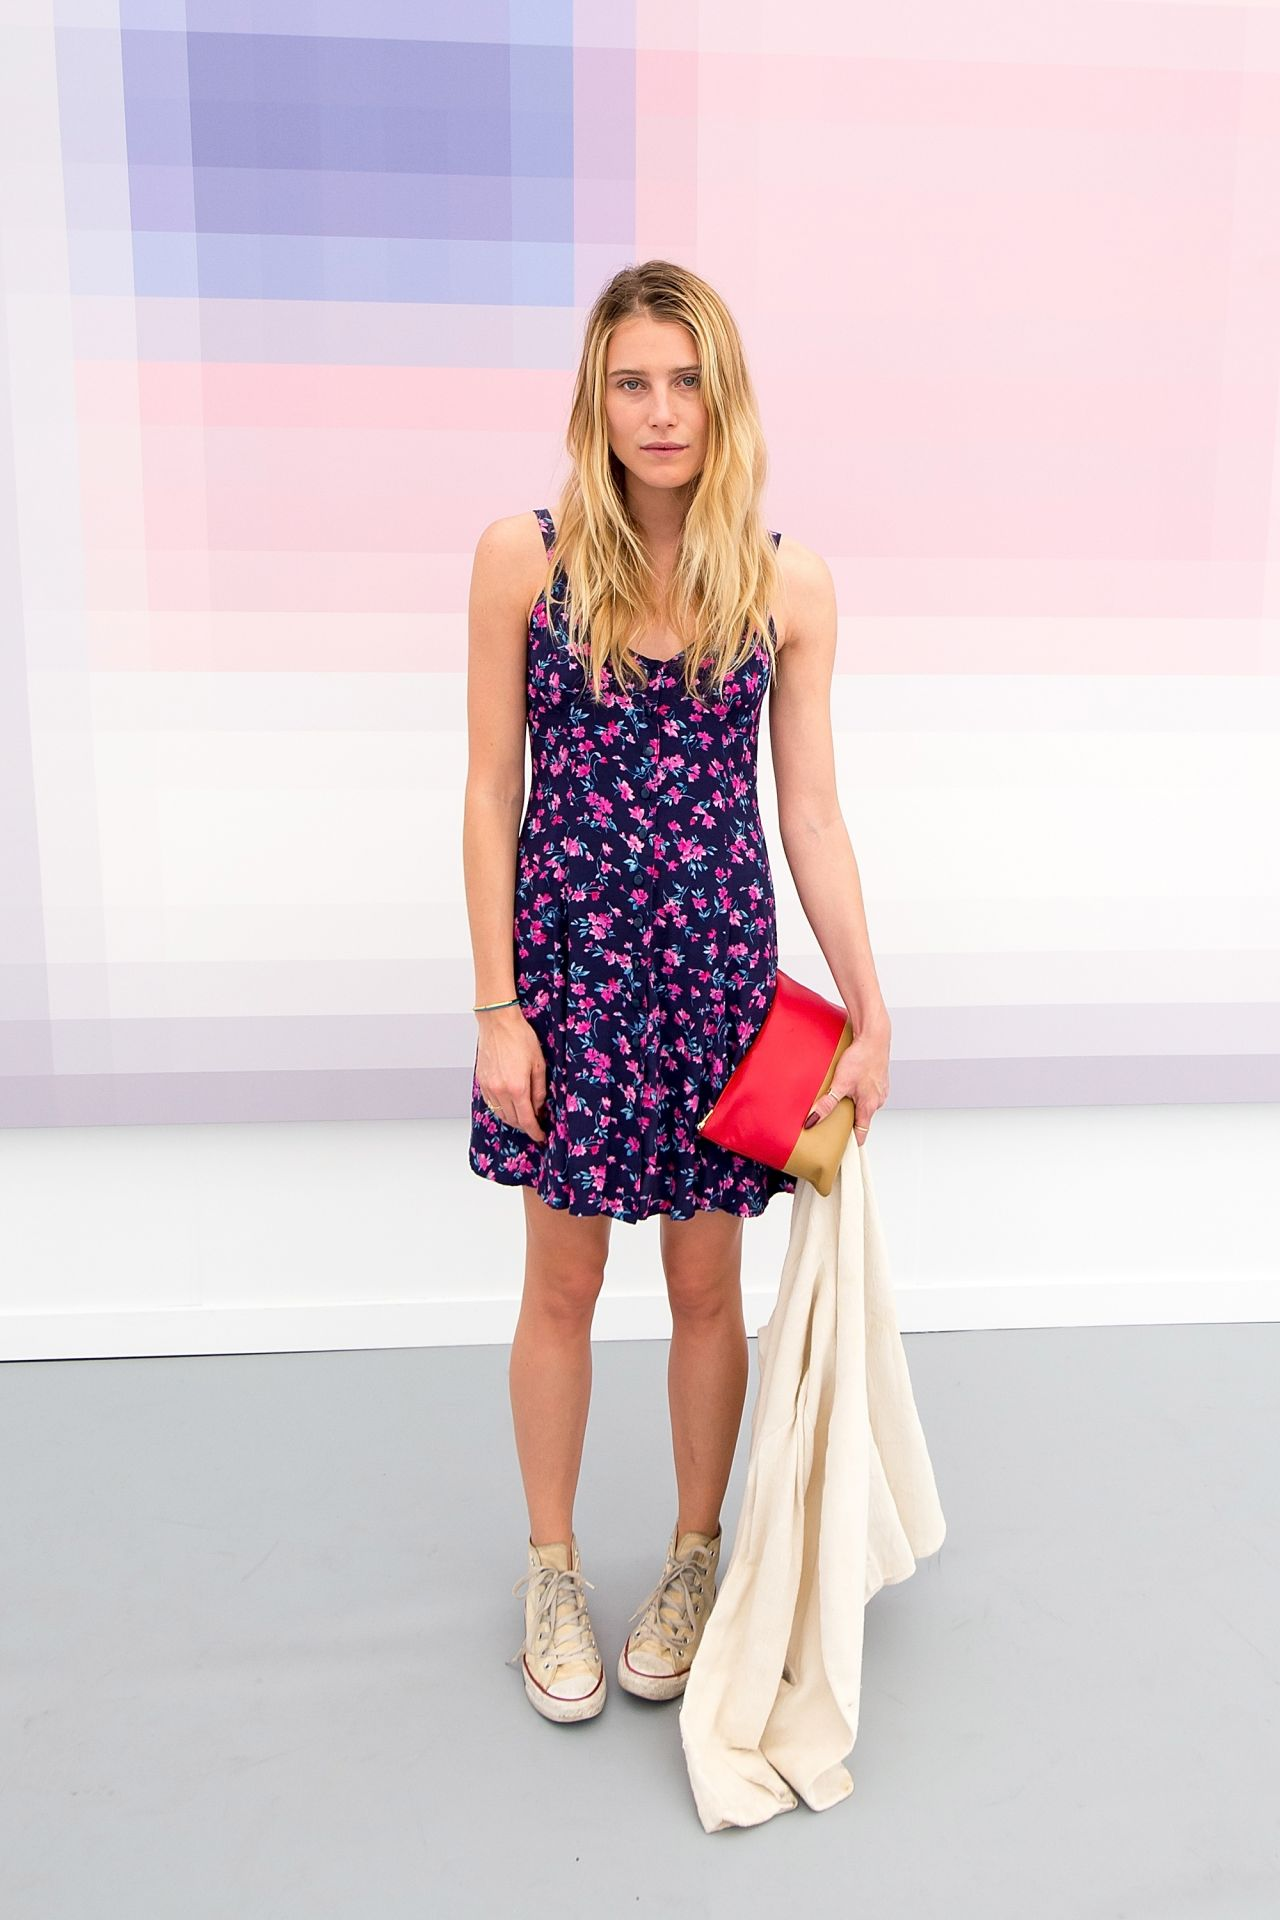 Dree Hemingway - Frieze New York Art Fair 2014